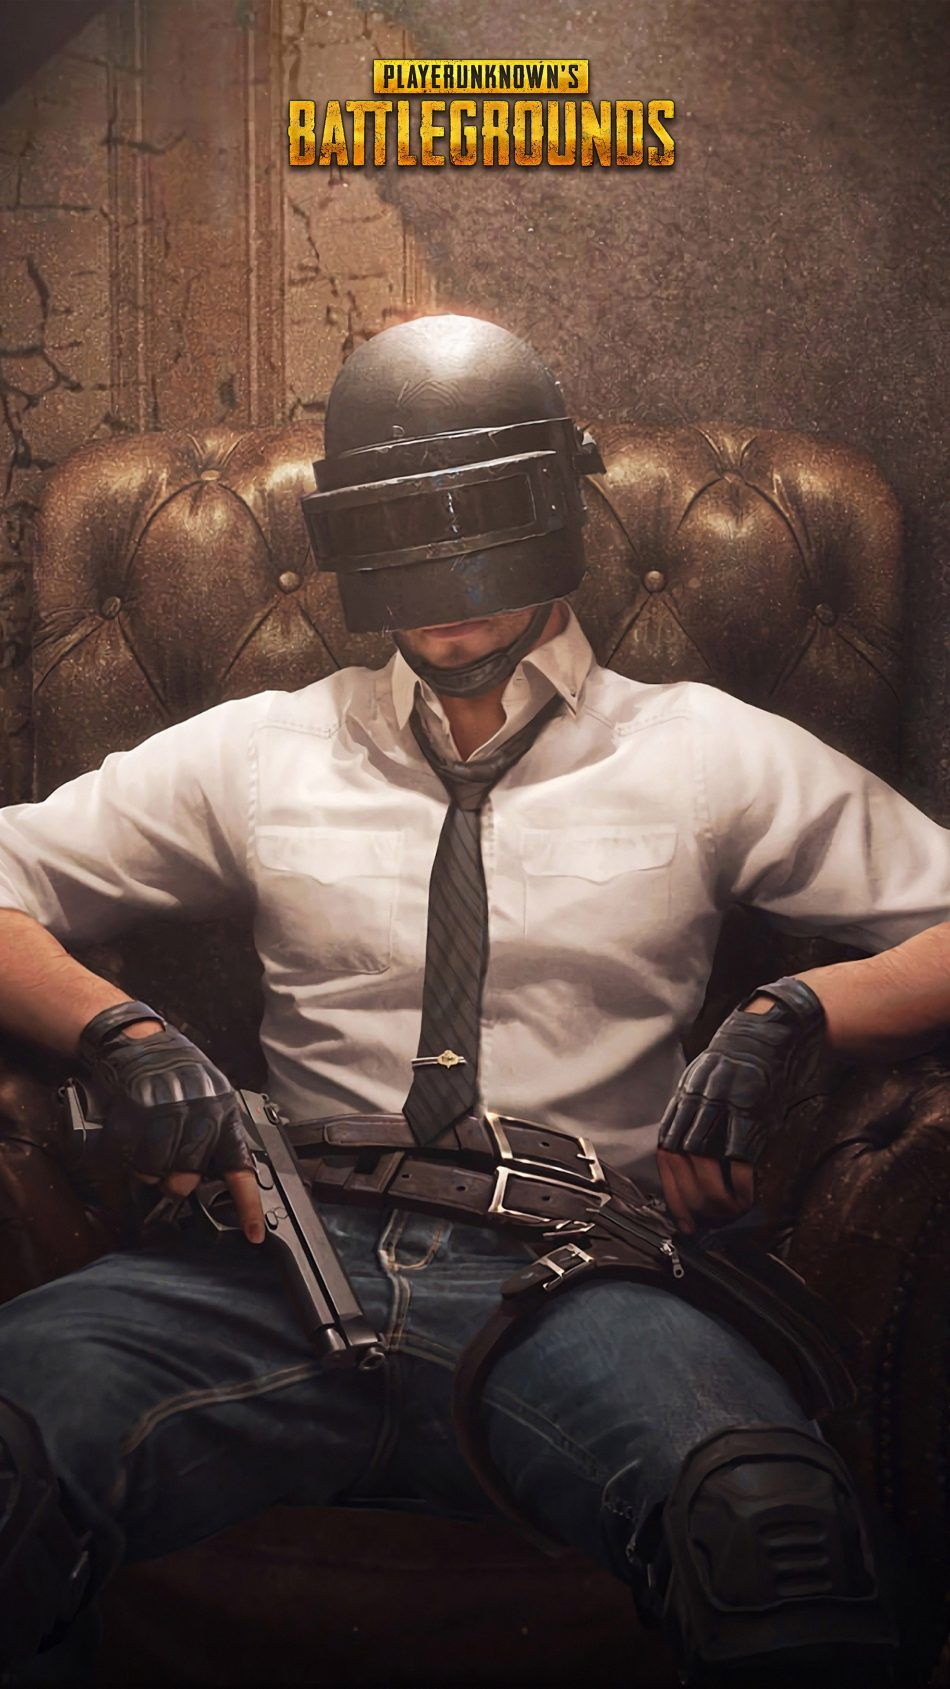 Pubg Helmet Guy Playerunknown S Battlegrounds 4k Ultra Hd Mobile Wallpaper Mobile Wallpaper Android Mobile Wallpaper Hd Wallpapers For Mobile